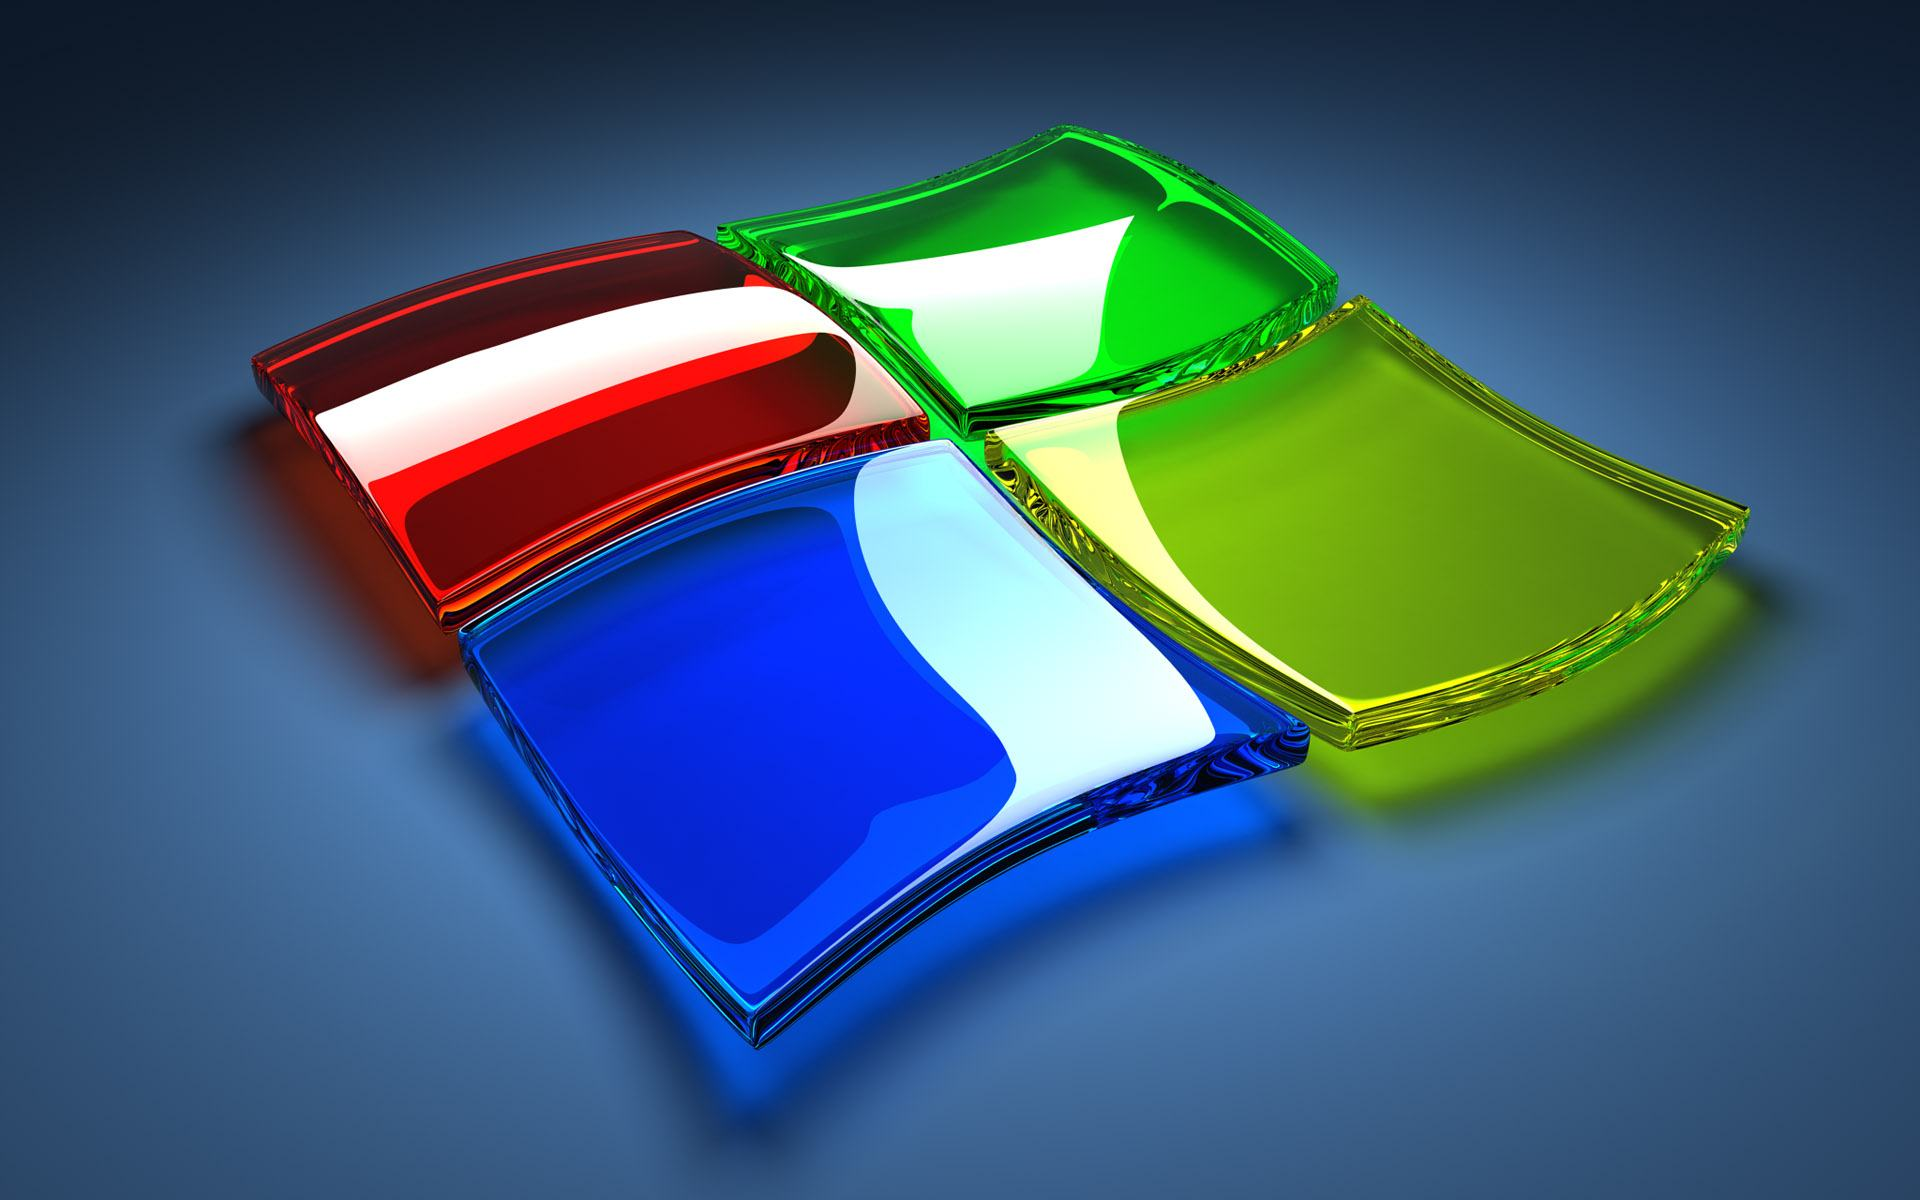 3D Computer Wallpapers Download 1920x1200